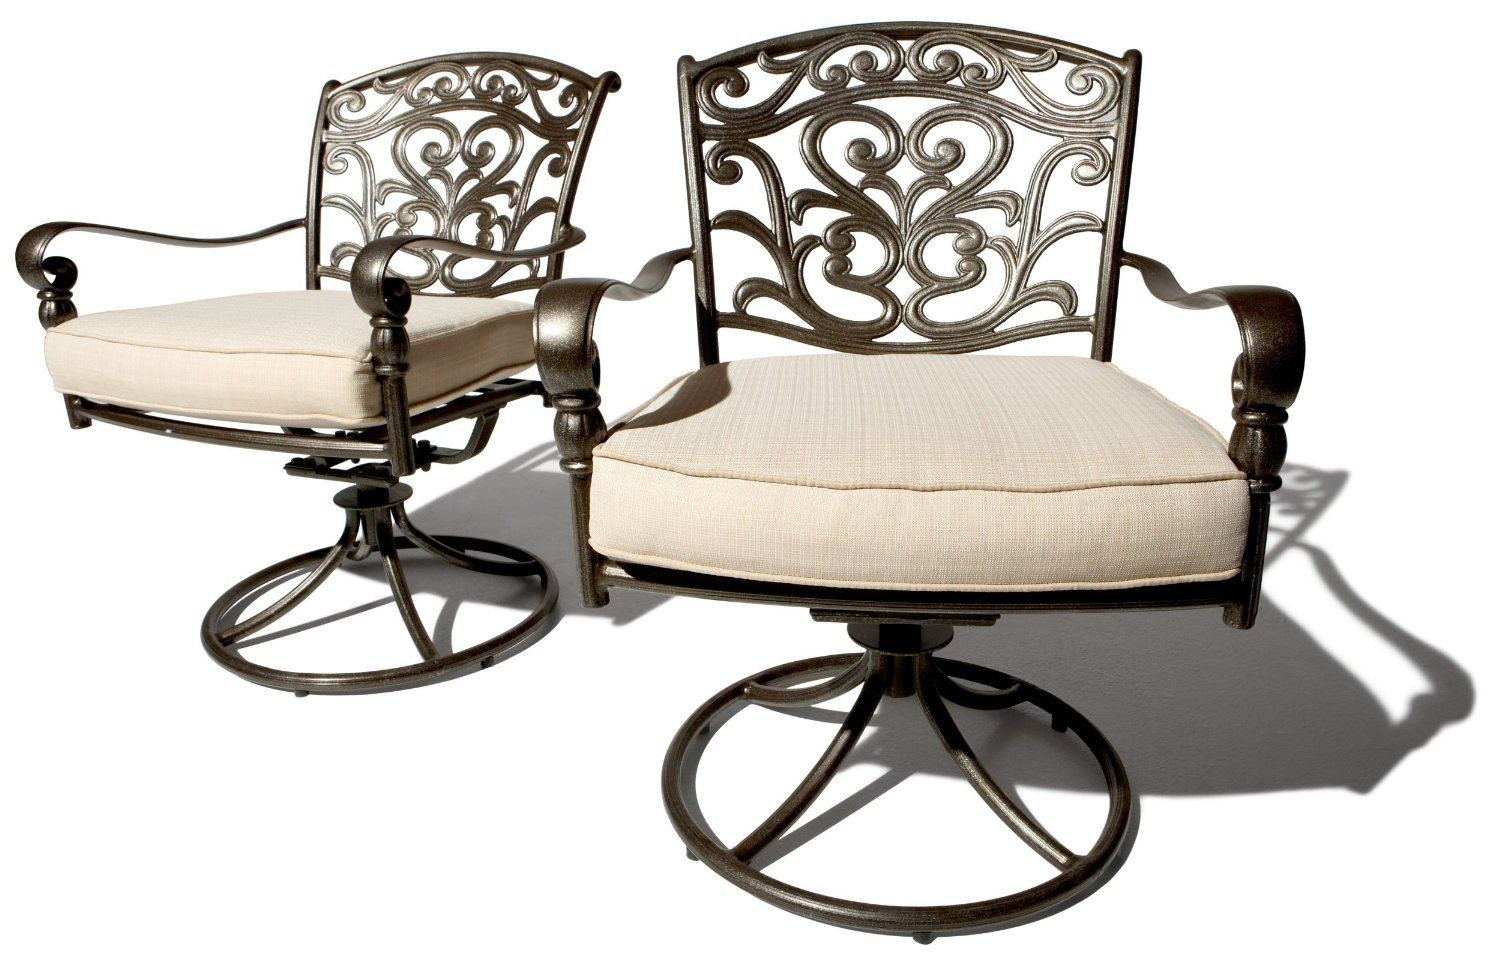 Smile Strathwood St Thomas Cast Aluminum Swivel Dining Arm Chair Set Of 2 Patio Chairs Lawn Garden